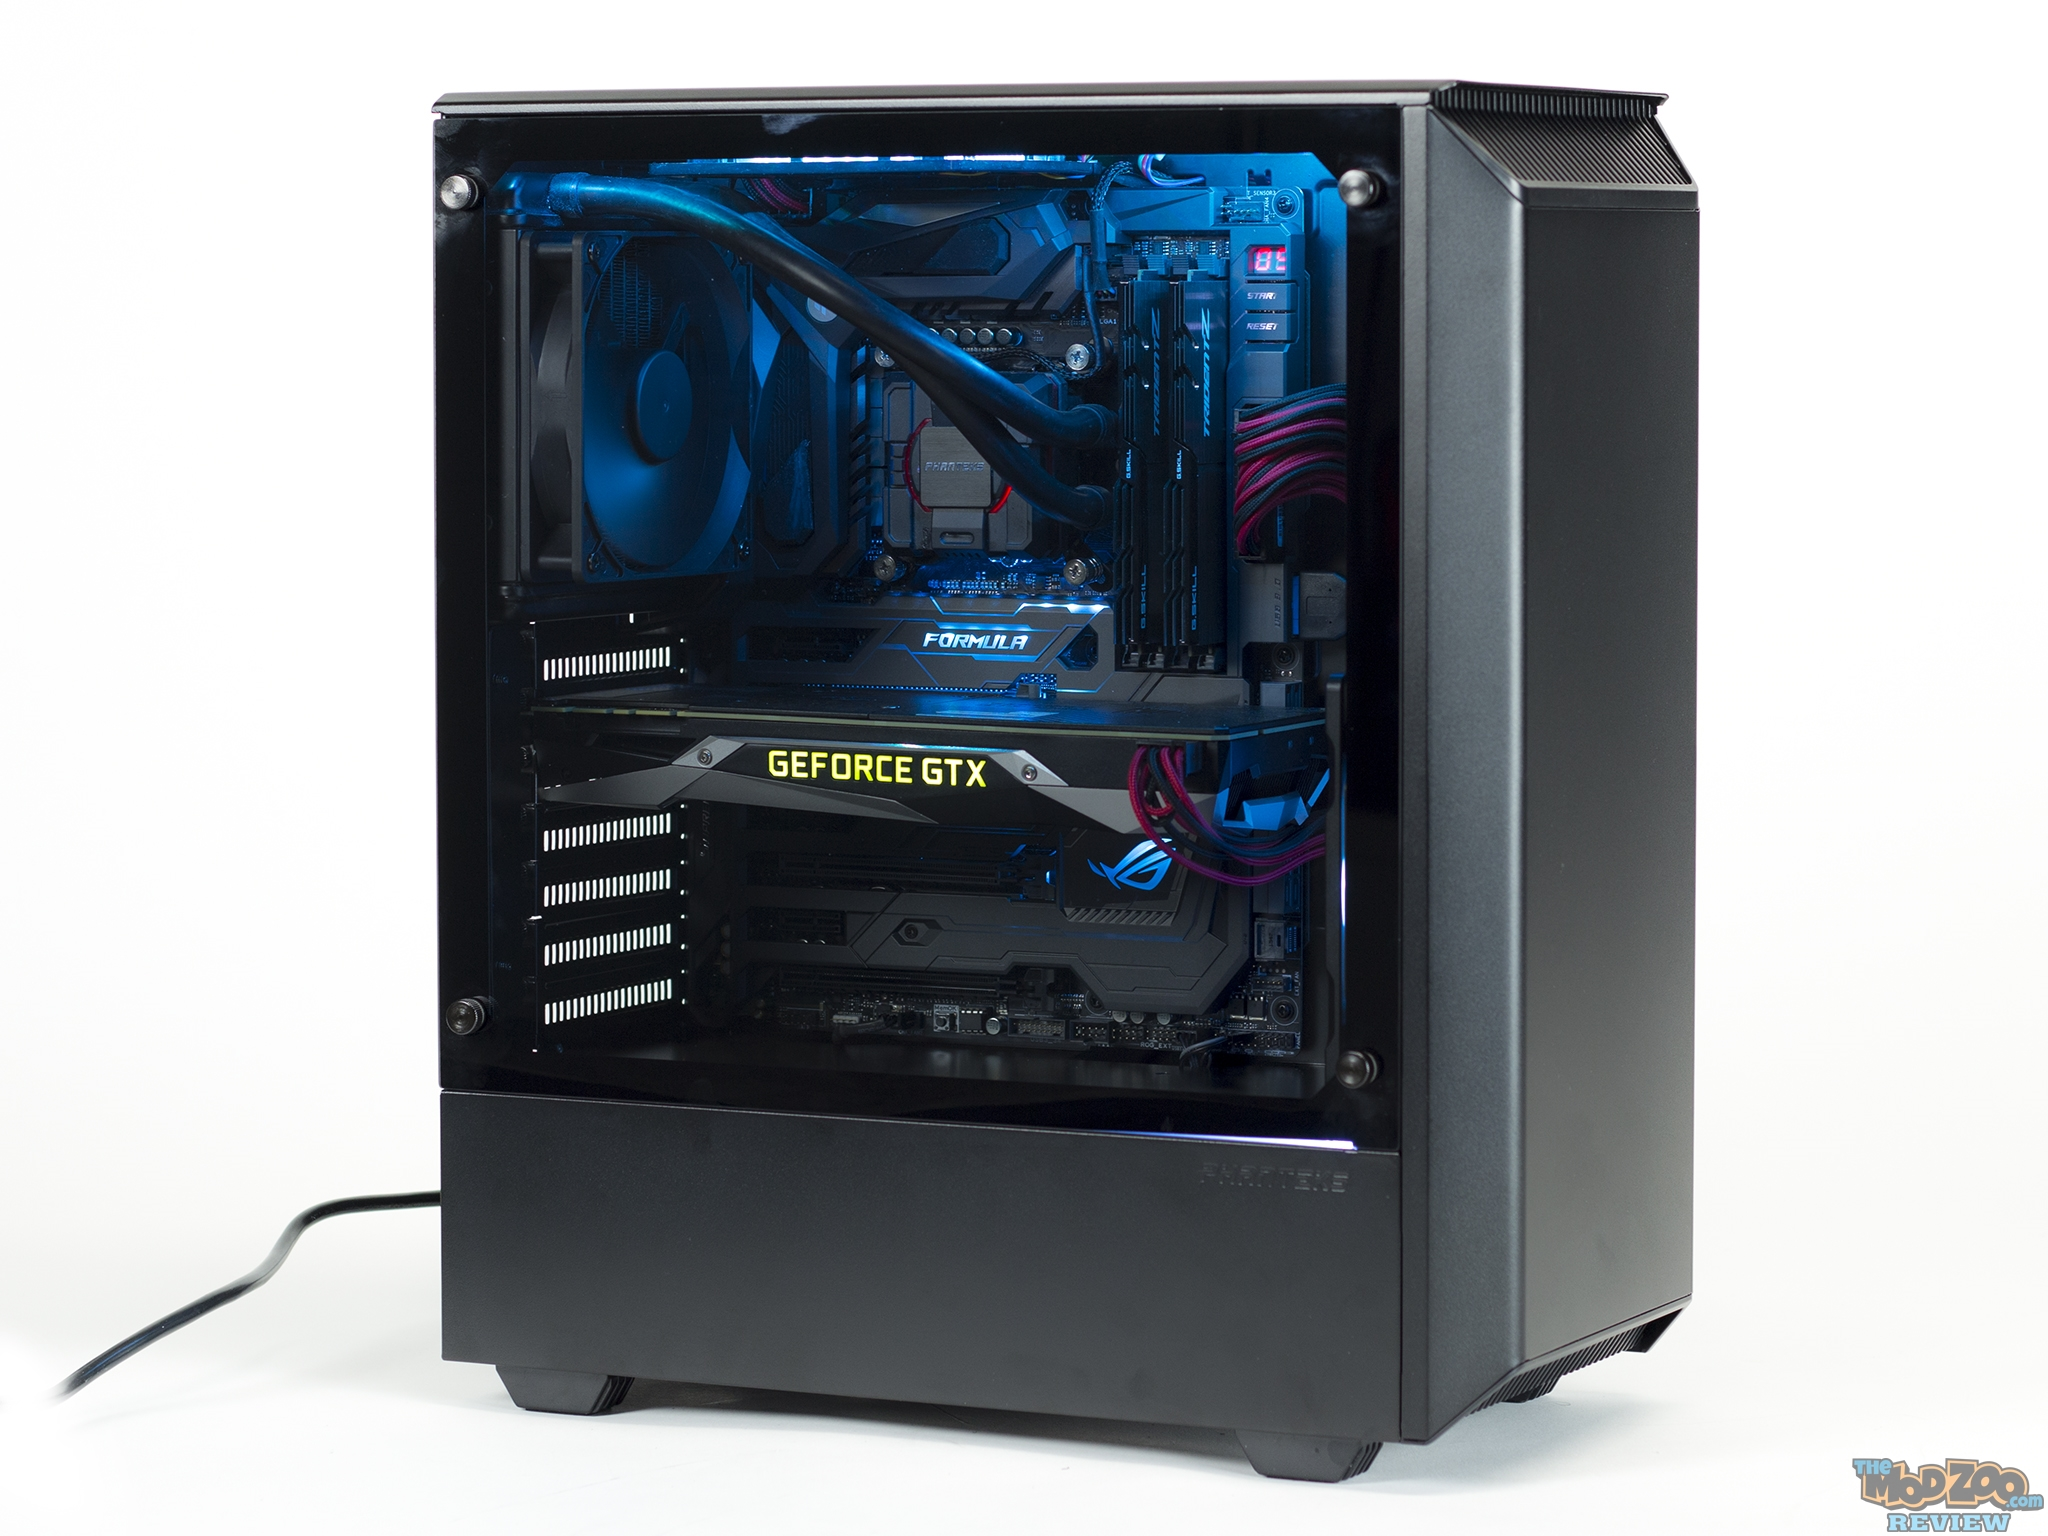 ddc87d828f4 Phanteks P300 Case Review